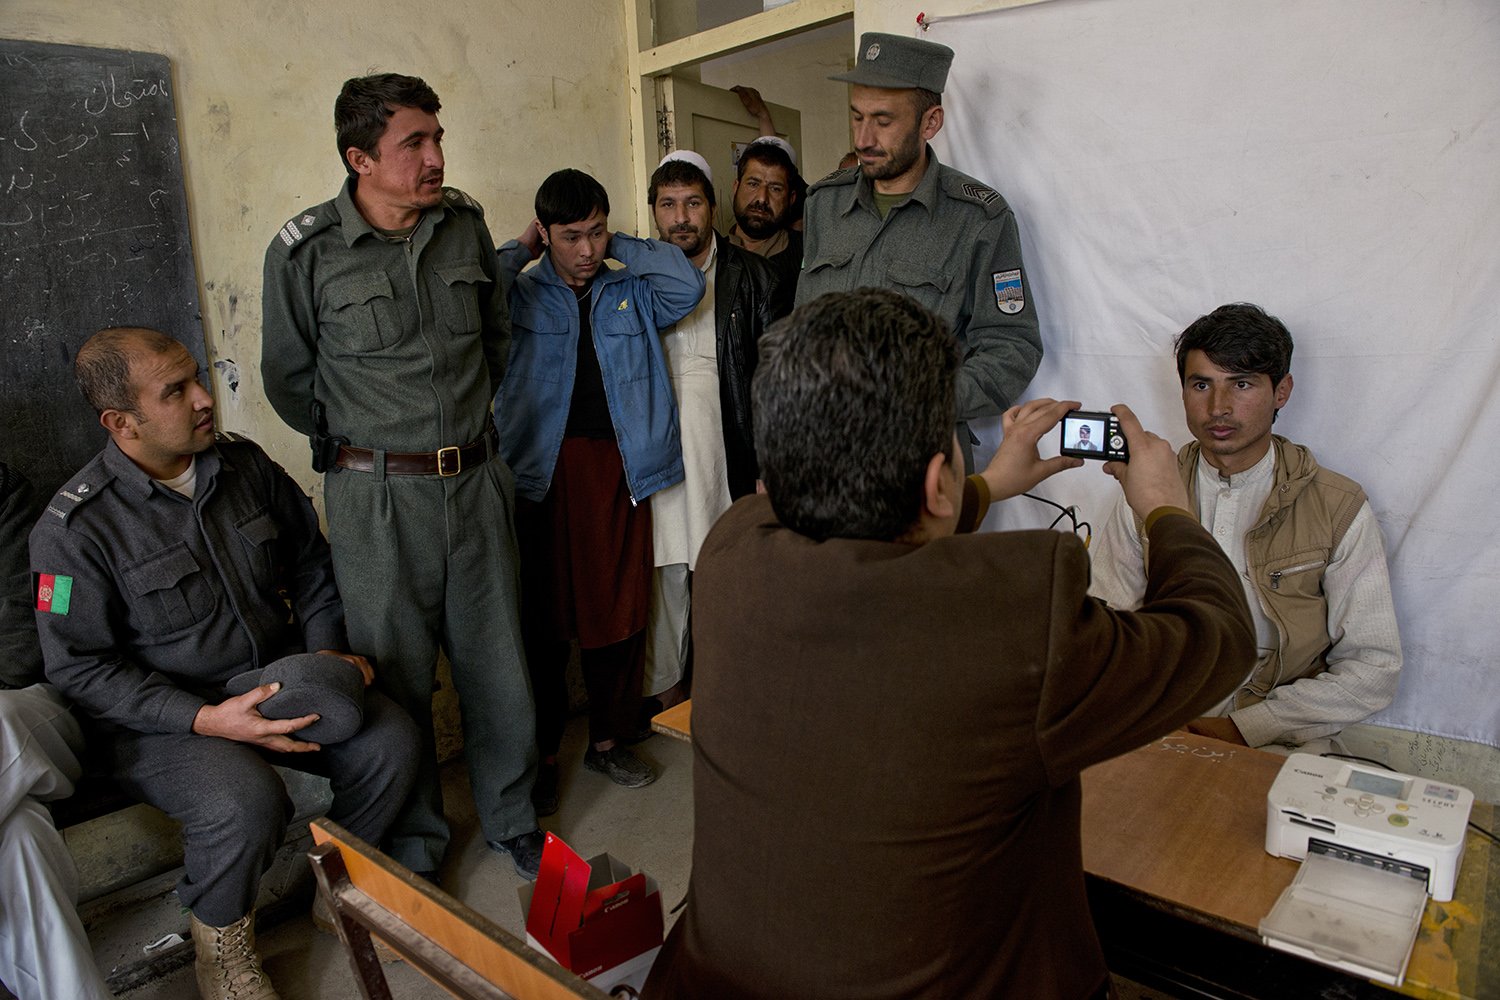 Afghan men make photo IDs for voter registration at a center run by the Afghan Independent Electoral Commission (IEC) in Shah Shaheed, Kabul, Afghanistan, March 25, 2014.